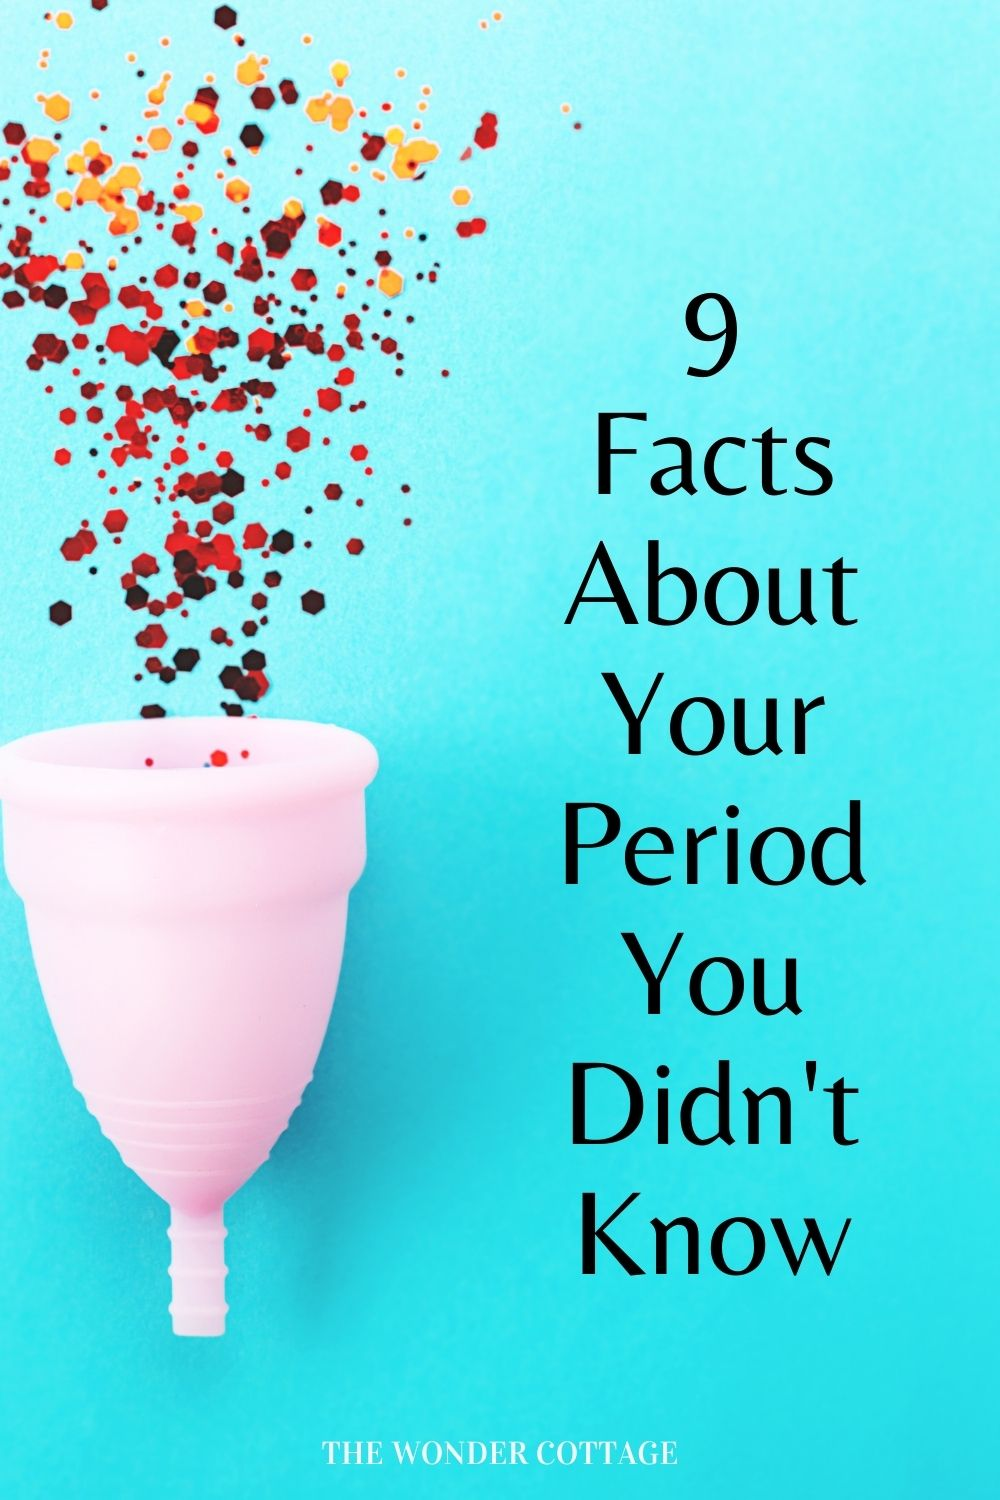 9 facts about your period you didn't know